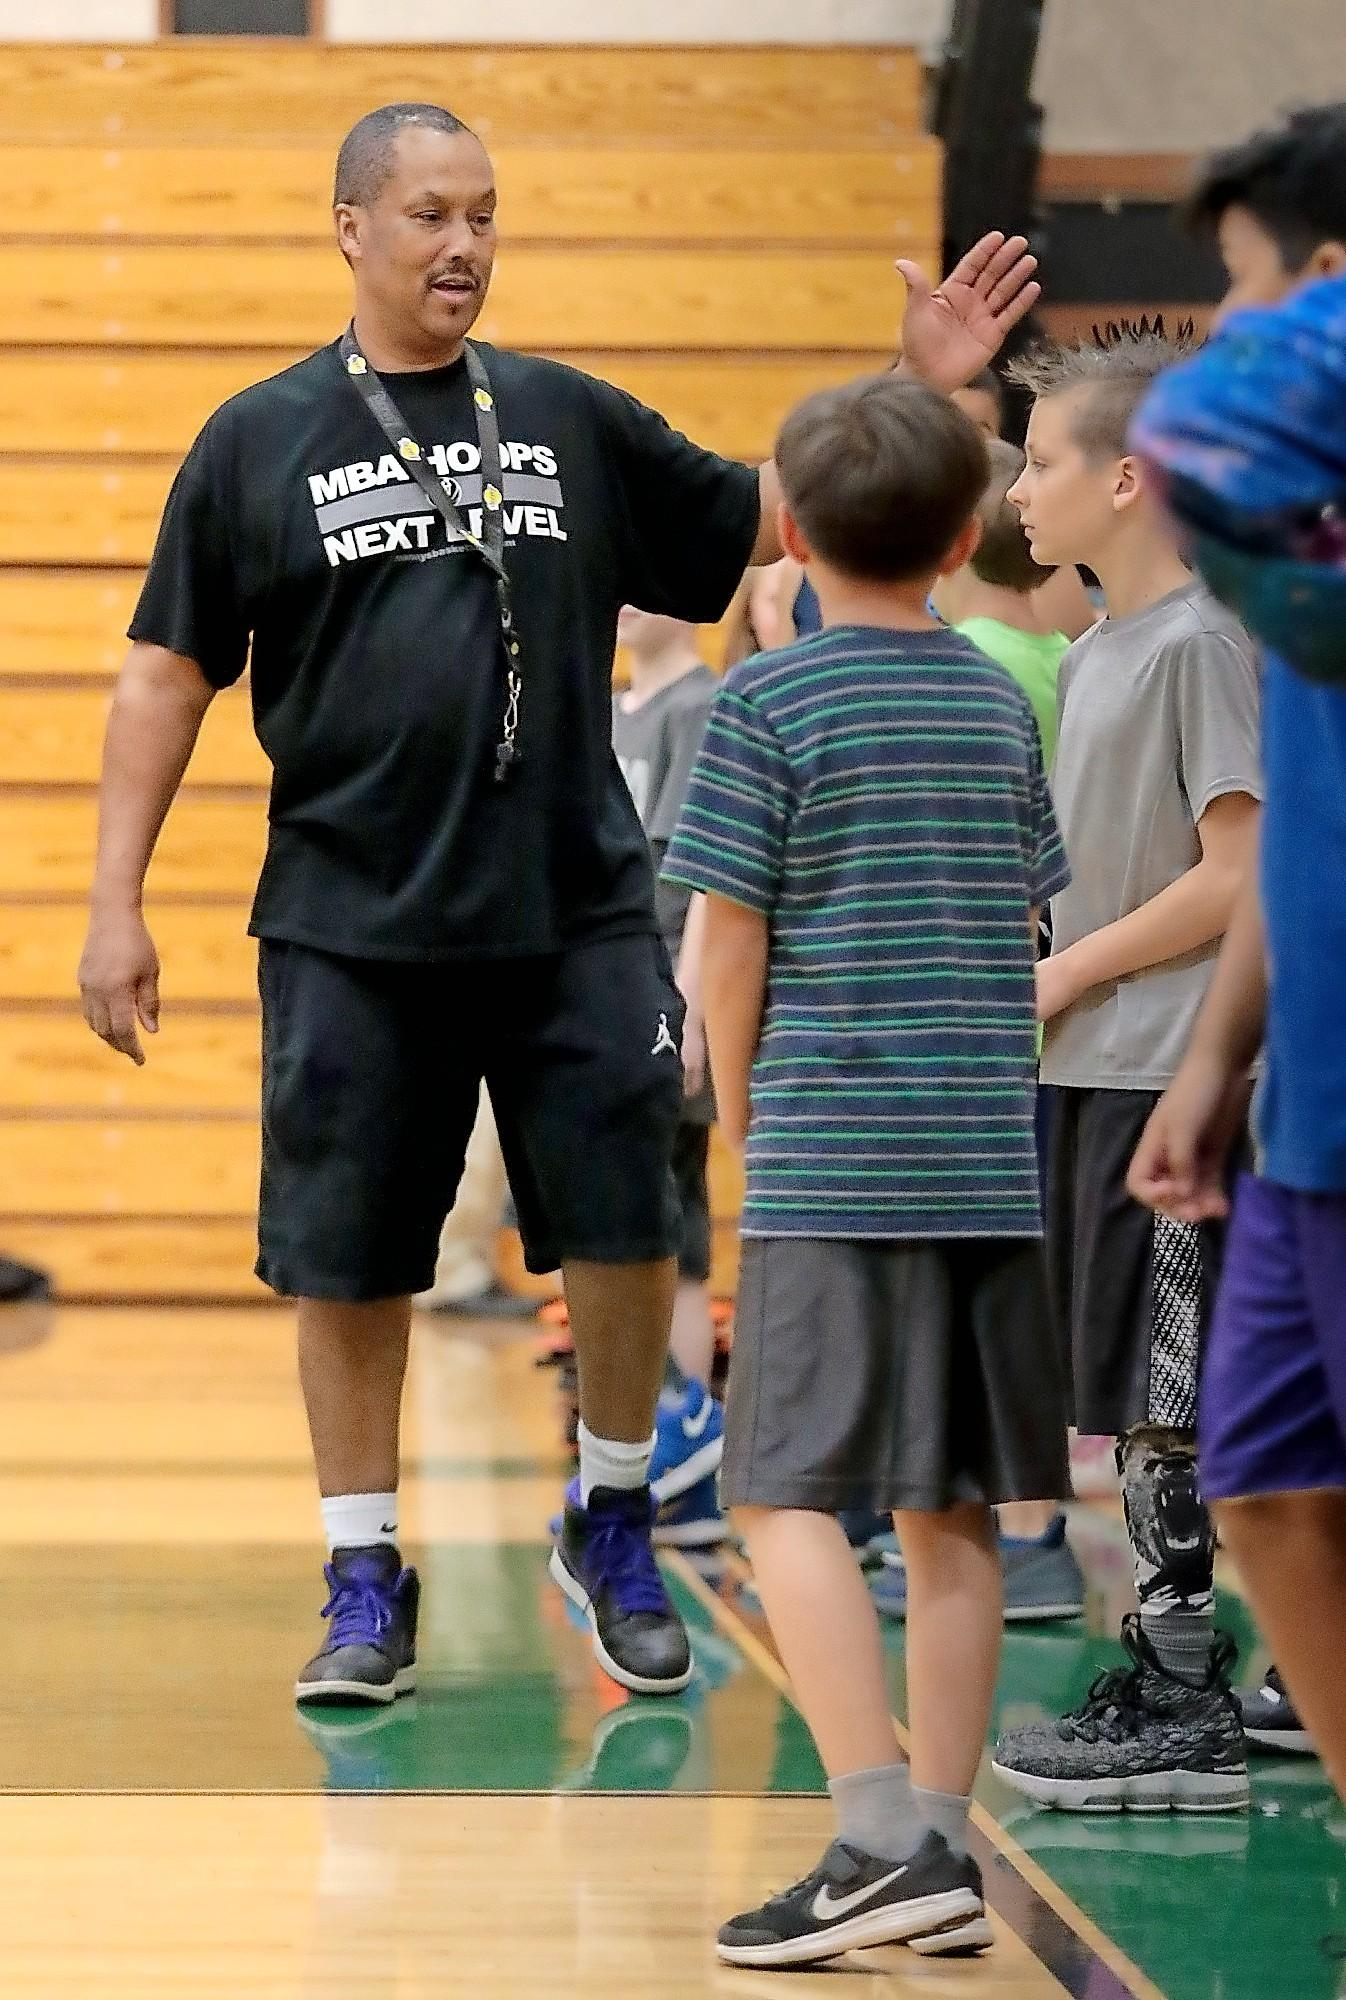 Manny Crump works with kids during an MBA Hoops session at the Central High gym in Medford.